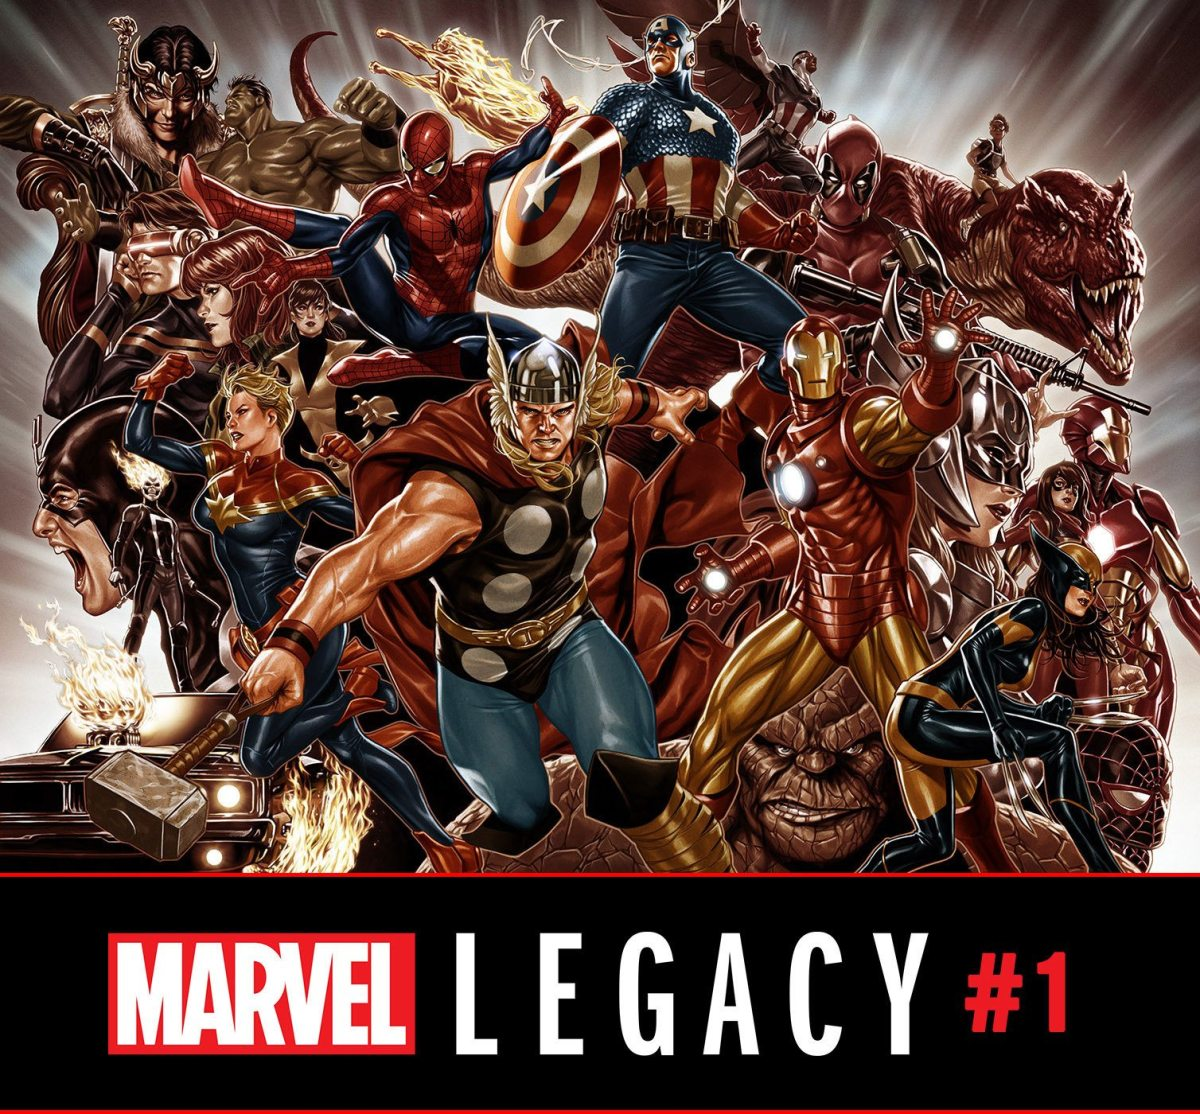 Marvel Comics News Digest 6/19 - 6/23/17 Featuring Marvel Legacy